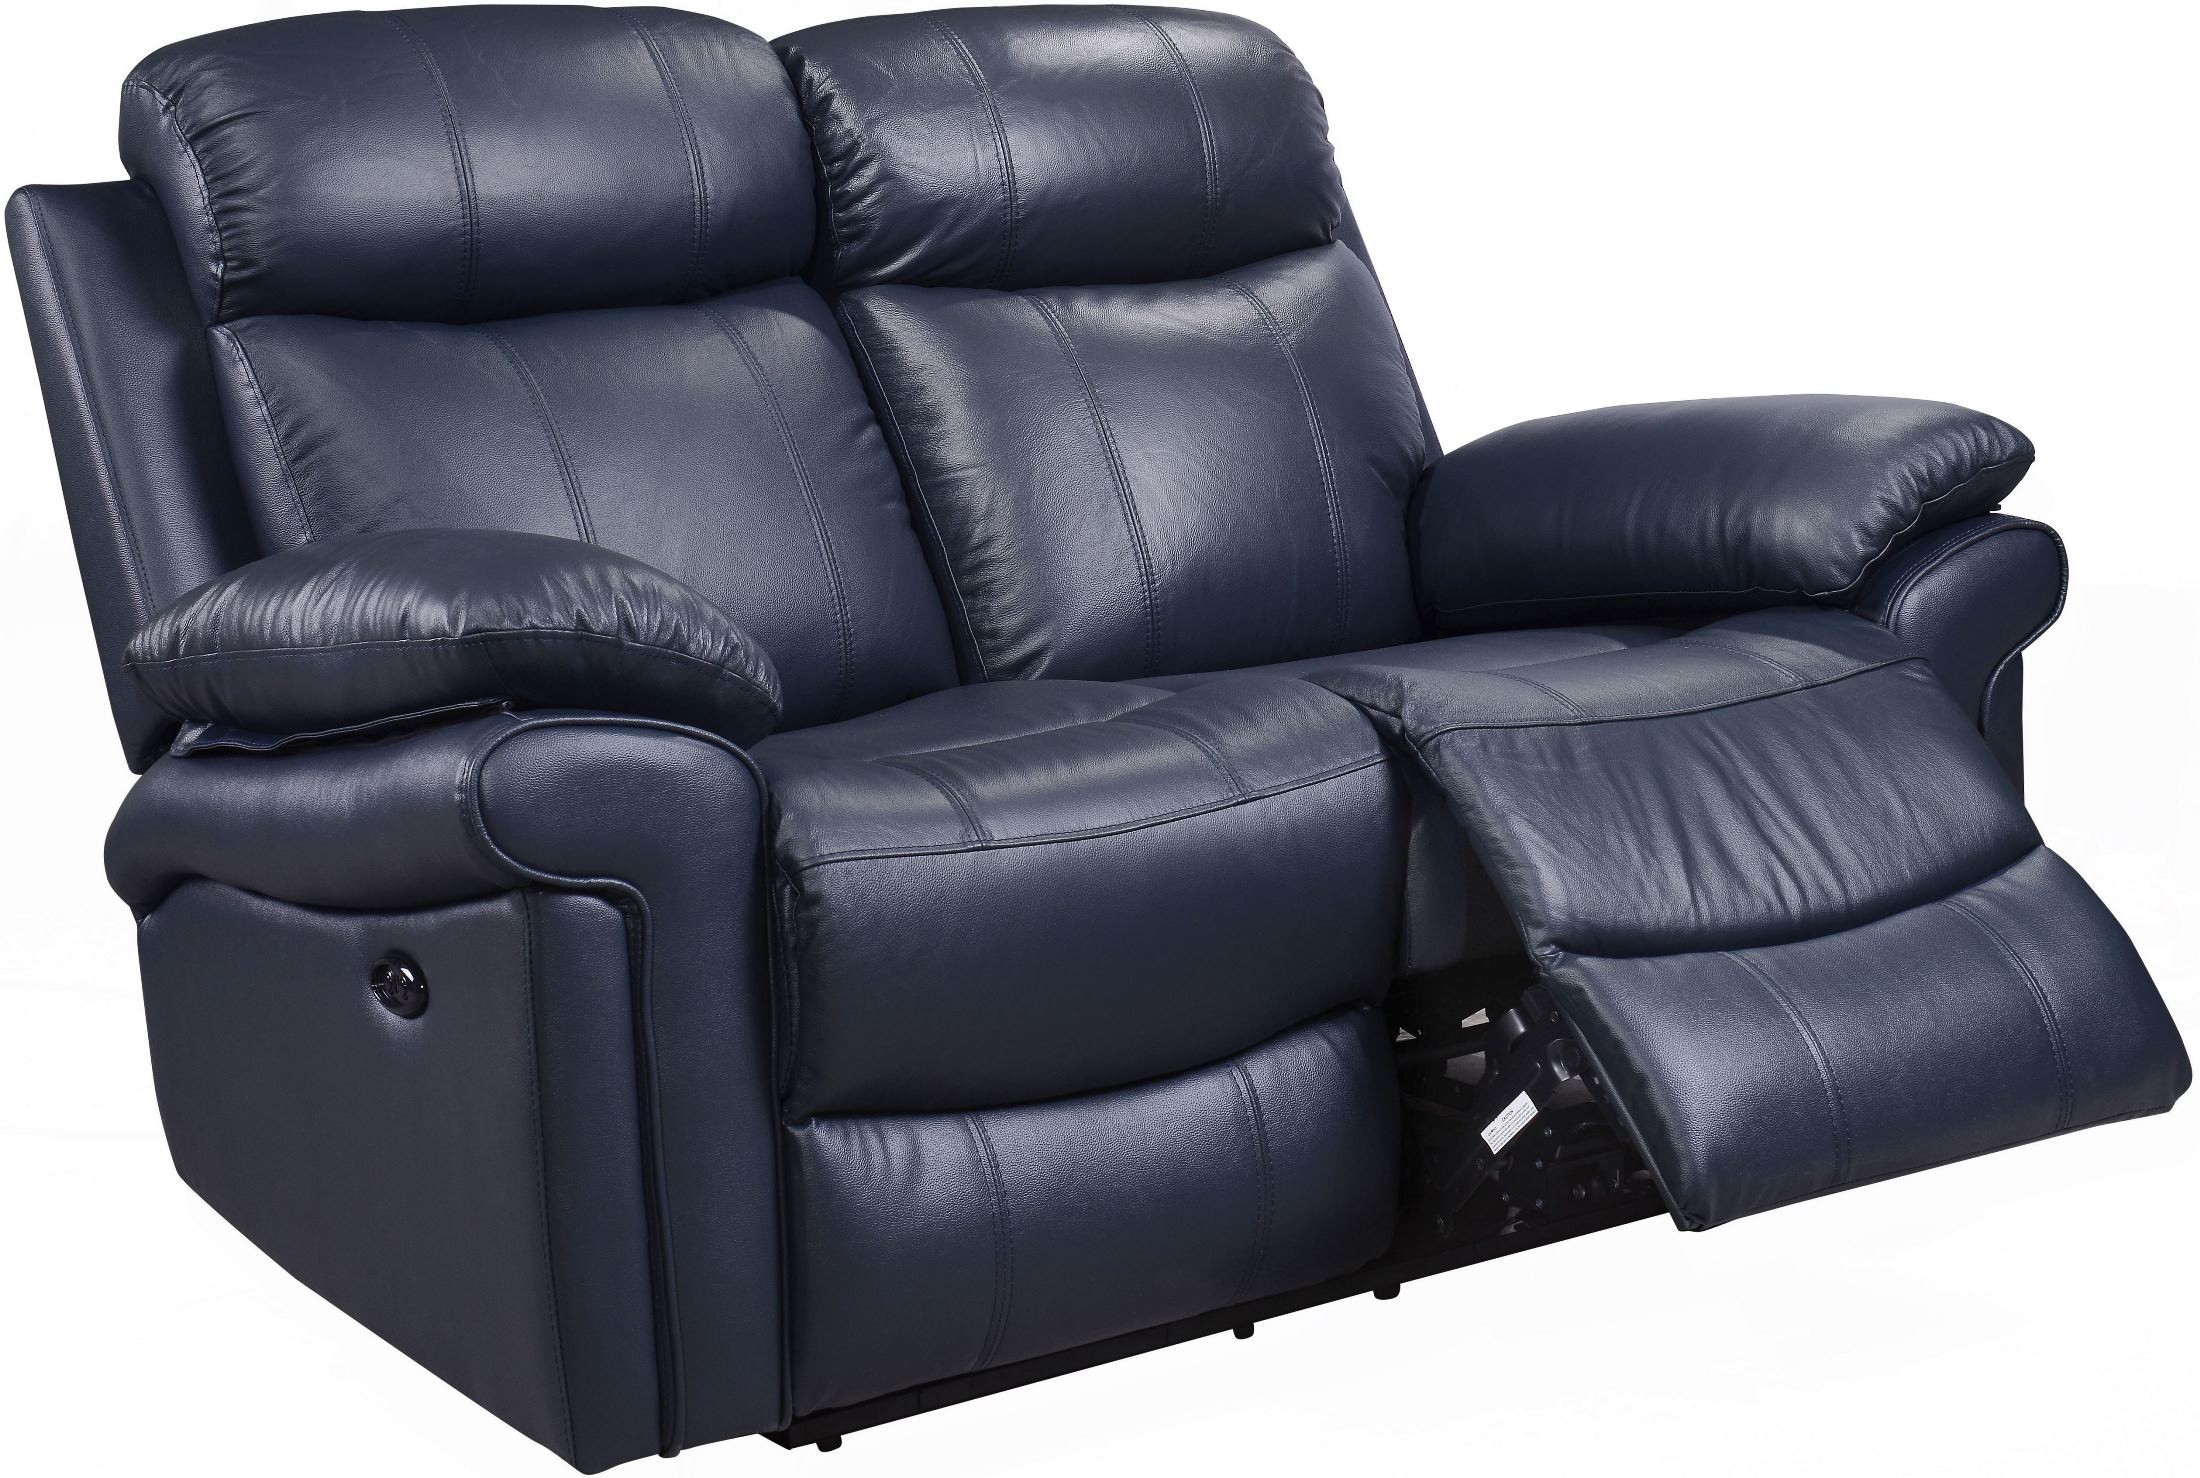 Shae Joplin Blue Leather Power Reclining Loveseat From